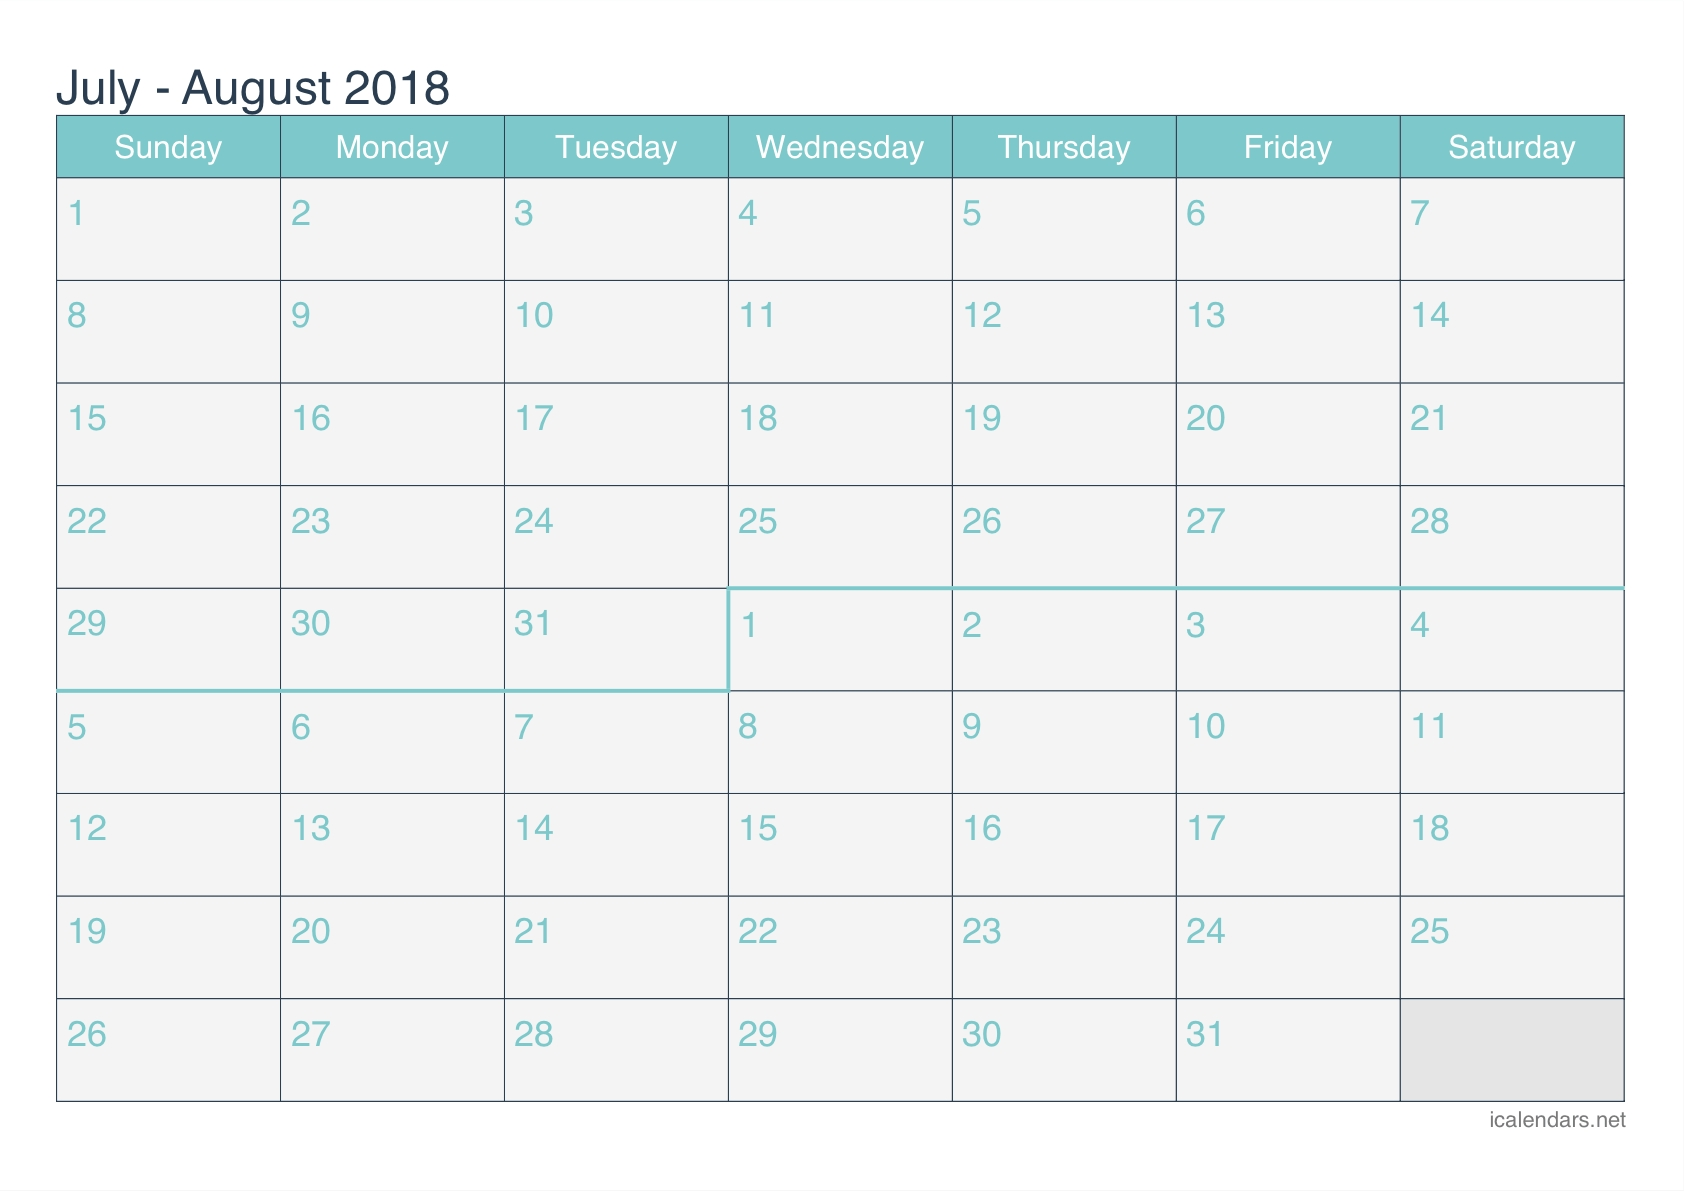 July And August 2018 Printable Calendar - Icalendars in Printable July Through August On One Page Calendars